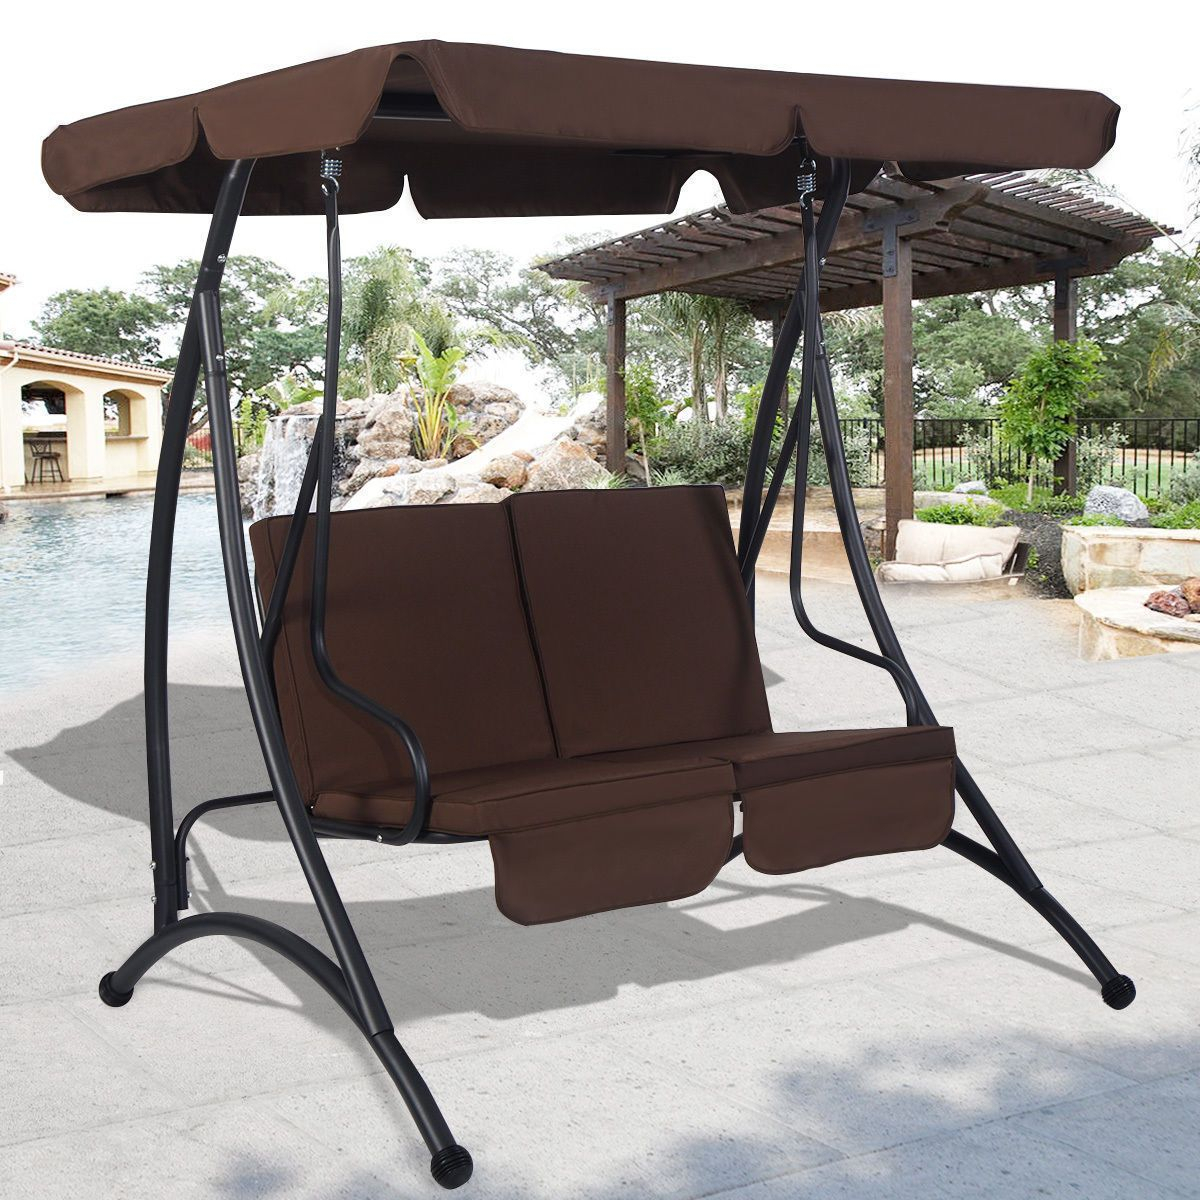 Outdoor Patio Canopy Swing Chair Metal 2 Person Hammock Within Patio Loveseat Canopy Hammock Porch Swings With Stand (Image 20 of 25)